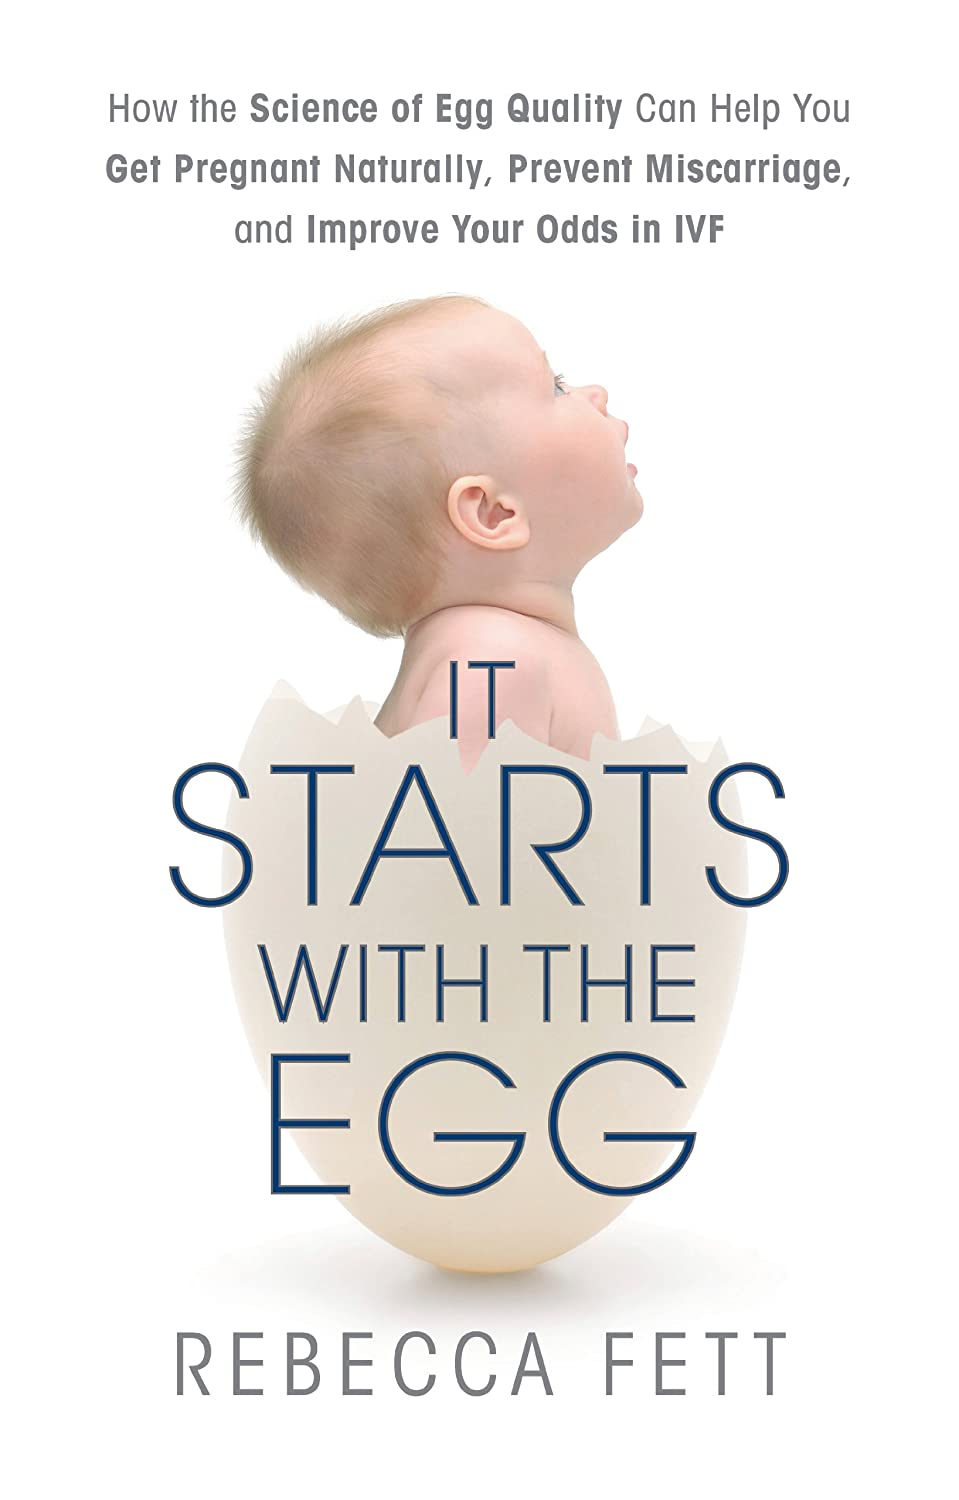 Image: It Starts with the Egg: How the Science of Egg Quality Can Help You Get Pregnant Naturally, Prevent Miscarriage, and Improve Your Odds in IVF, by Rebecca Fett. Publisher: Franklin Fox Publishing LLC (March 25, 2014)